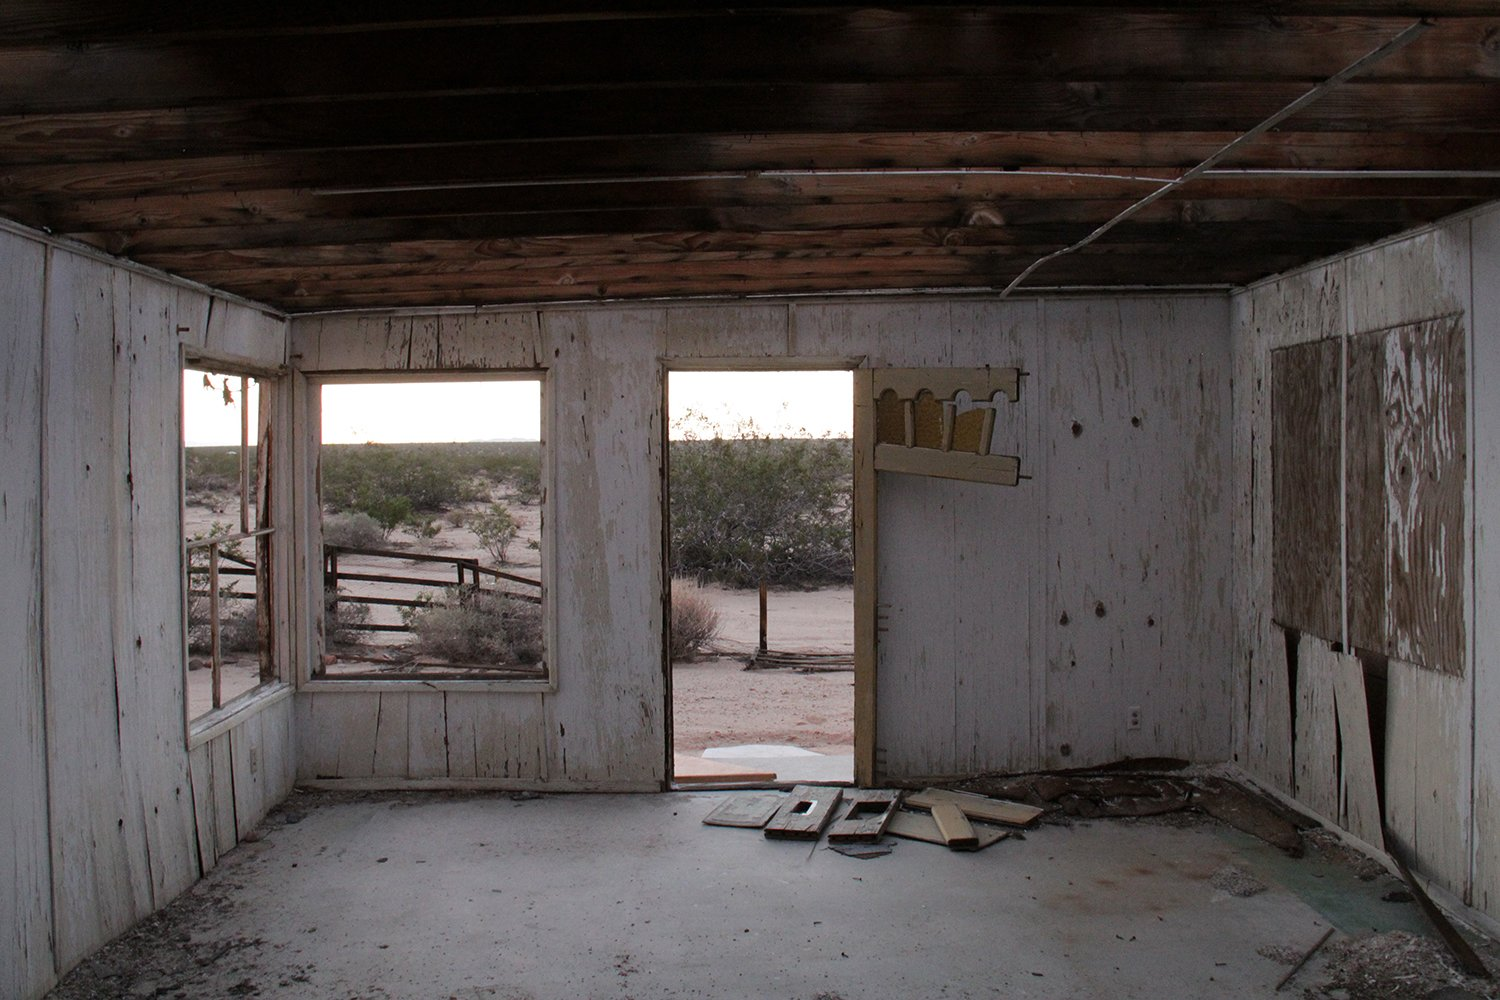 The interiors at the time of the purchase.  Photo 2 of 21 in Experts Reveal the Top 10 Things to Consider Before Investing in a Fixer-Upper from A Couple Buy a Collapsing Cabin For $7K in Joshua Tree and Revamp it Into a Desert Oasis